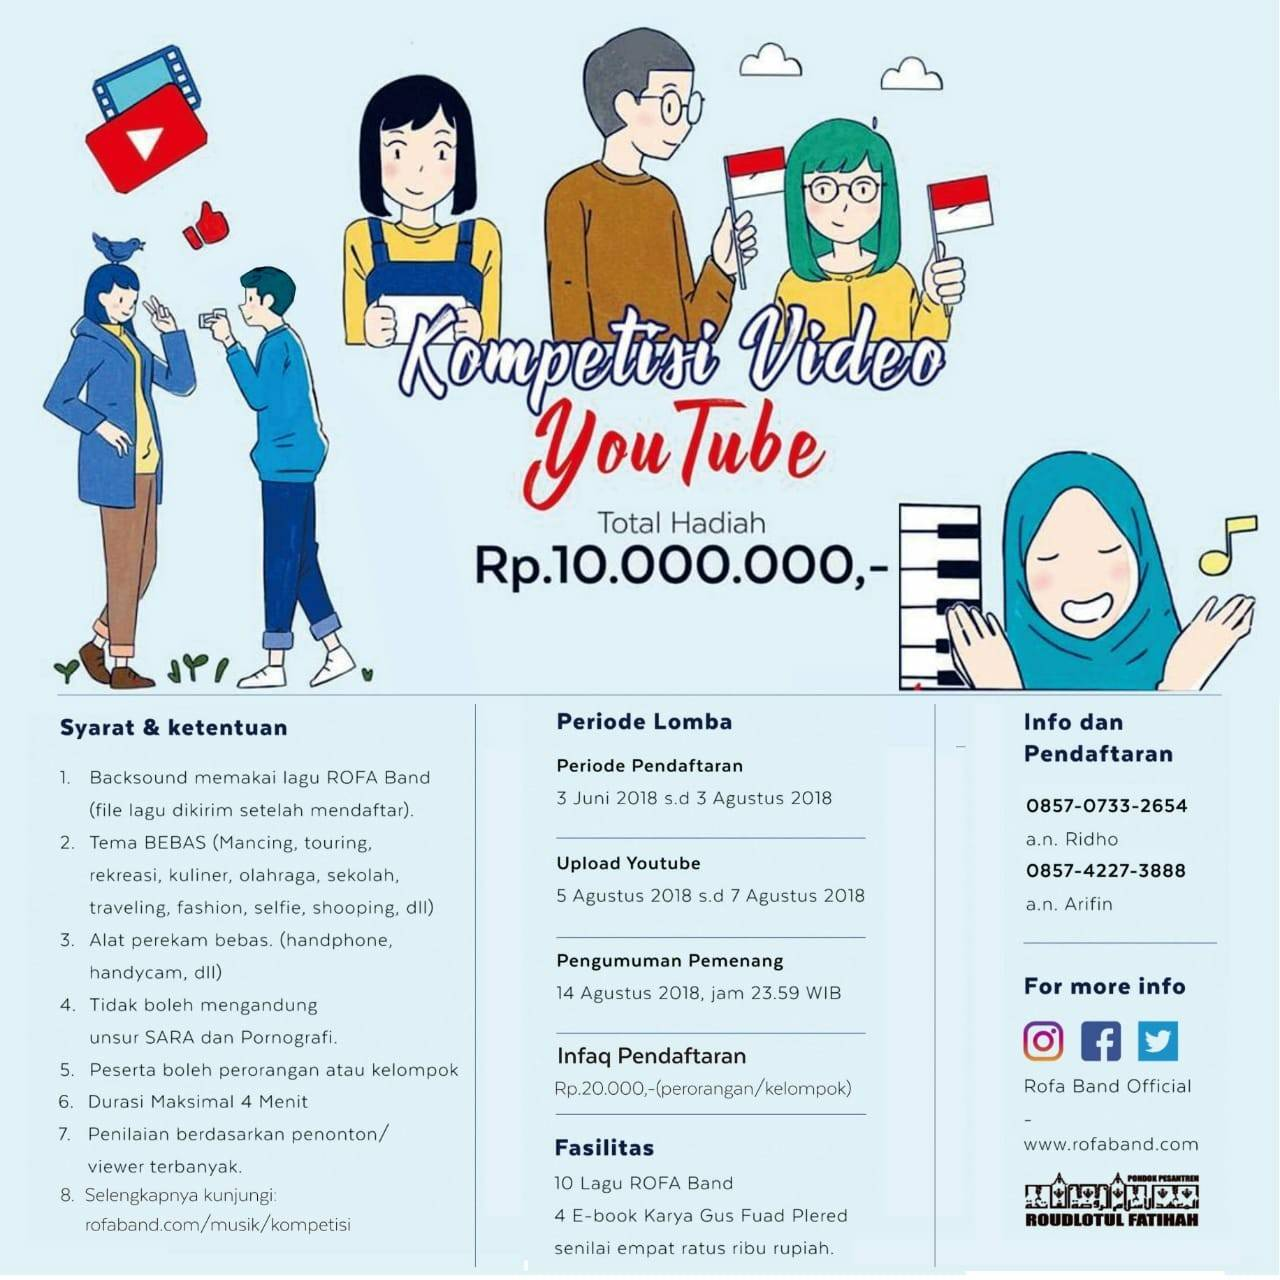 Kompetisi Video Youtube 2018, Hadiah 10 Jt